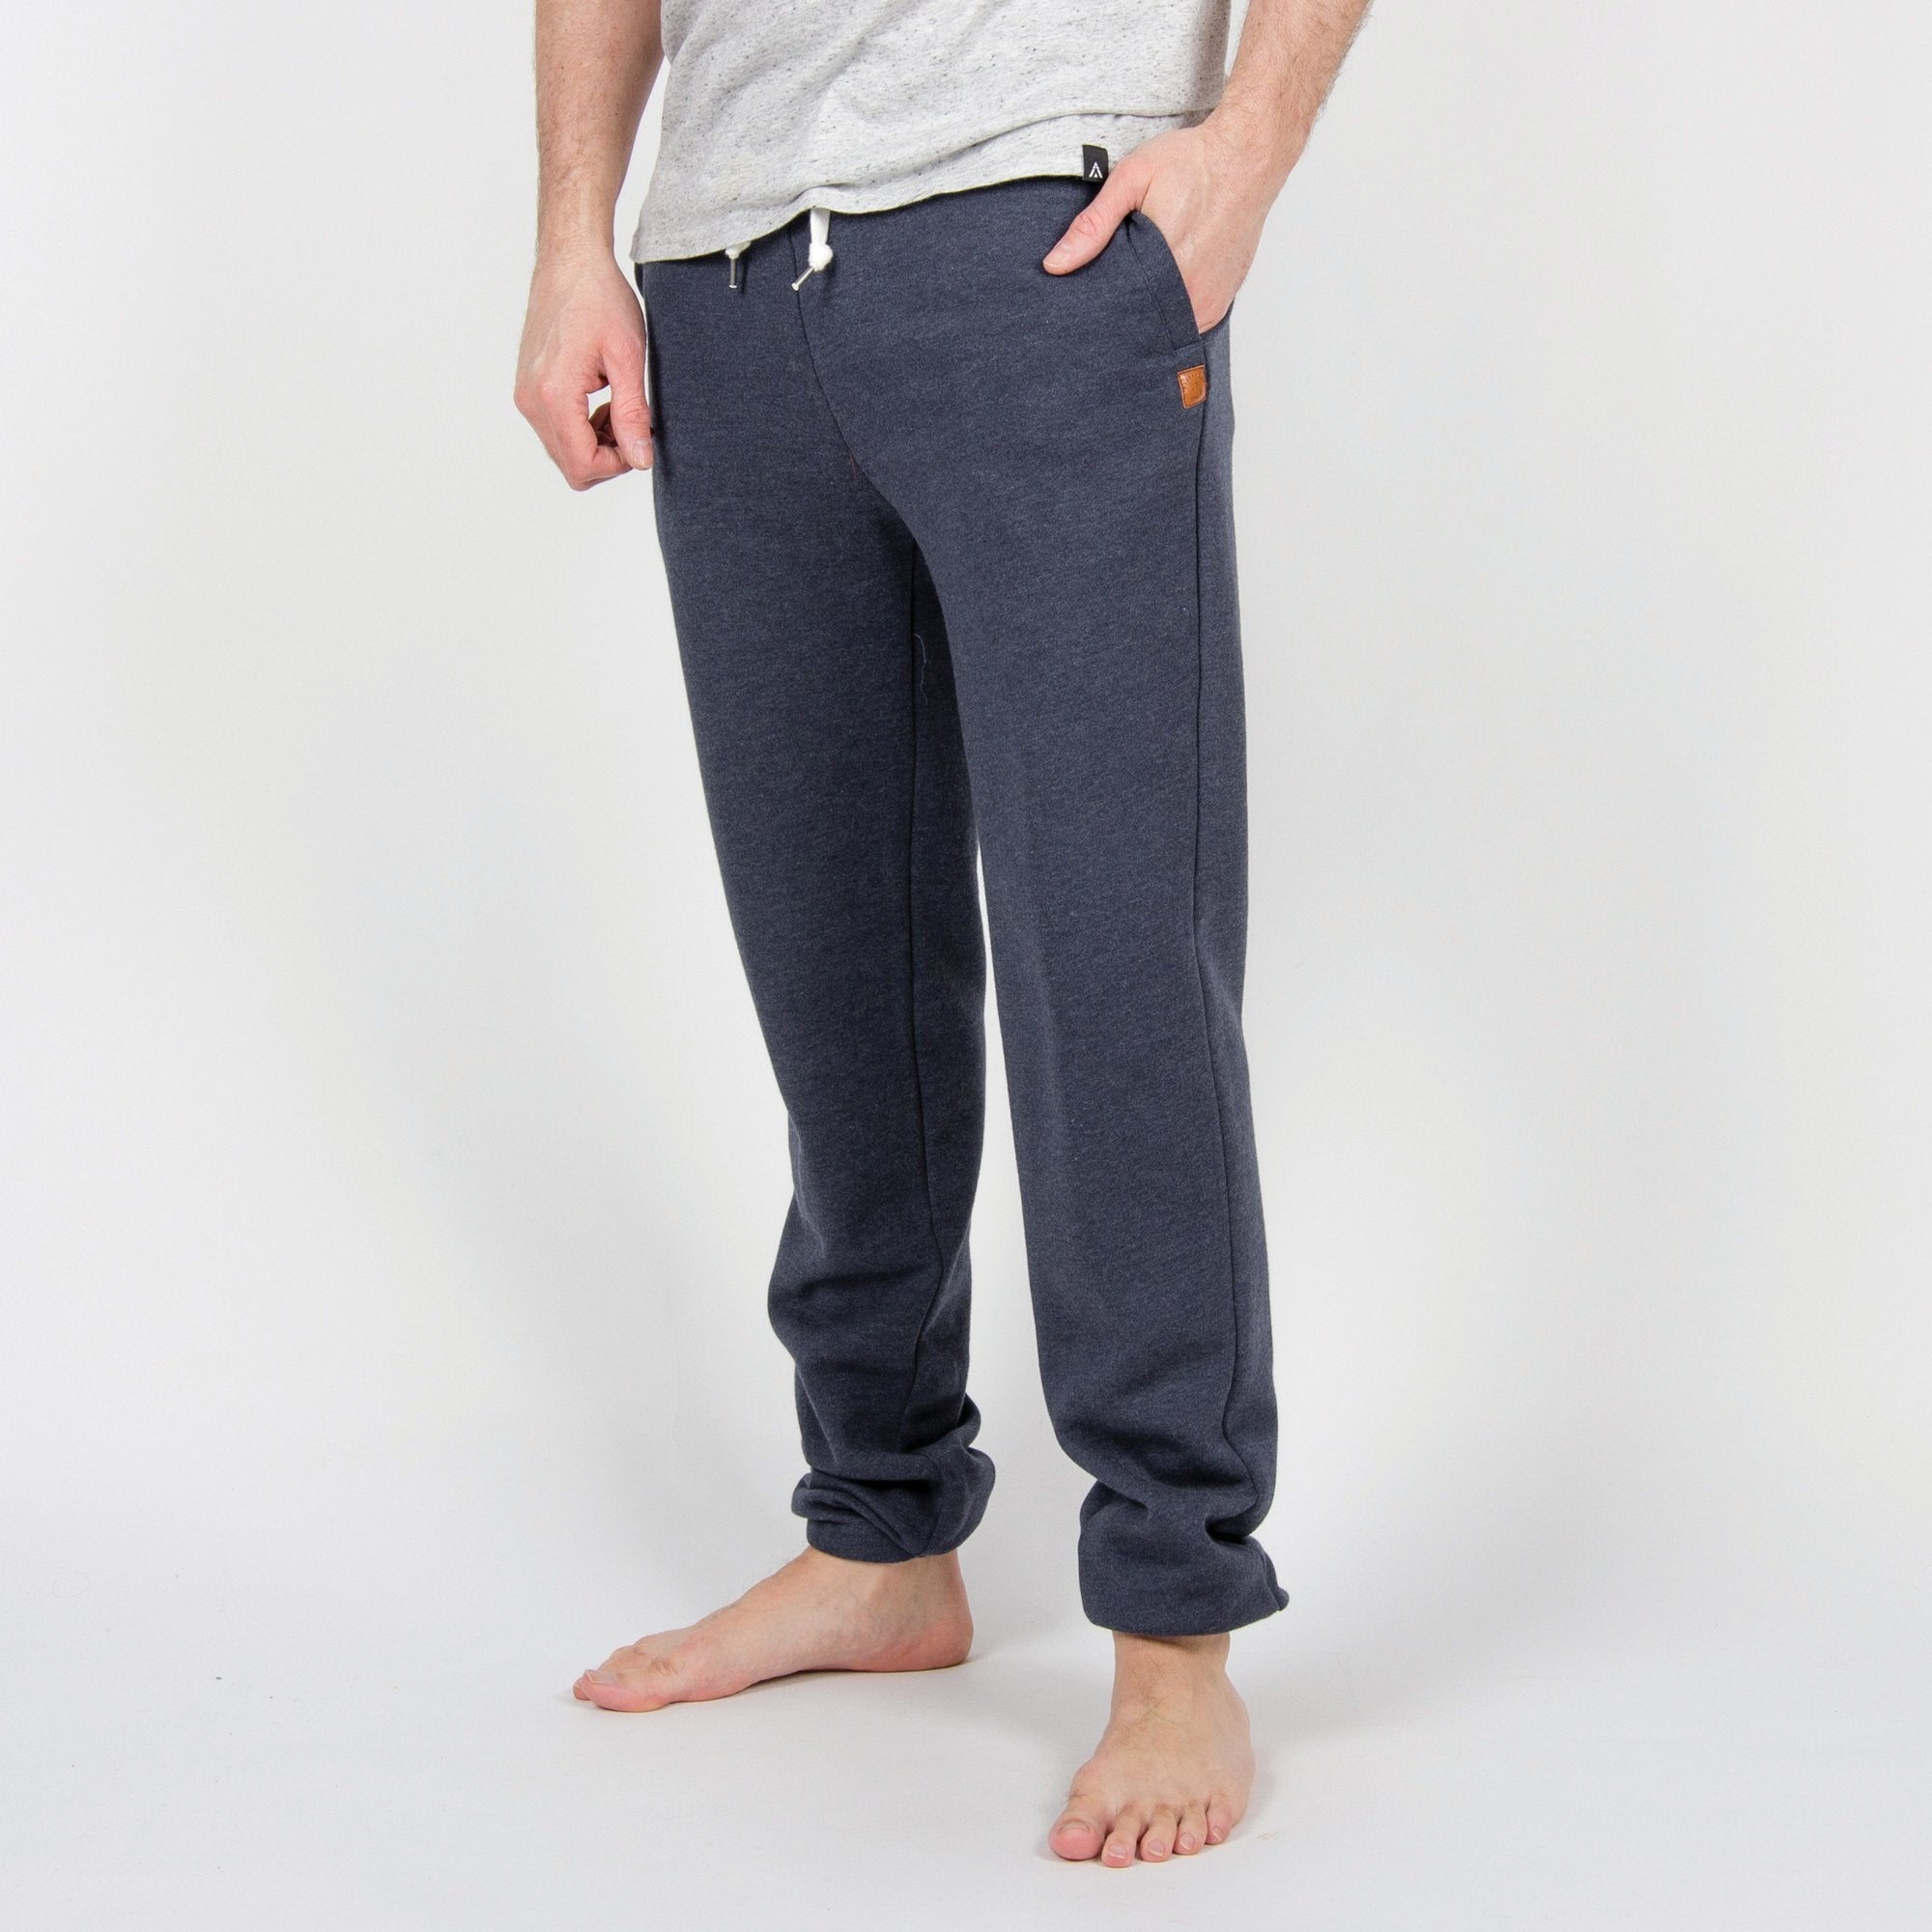 Hunker Sweatpants - Blue Nights Marl image